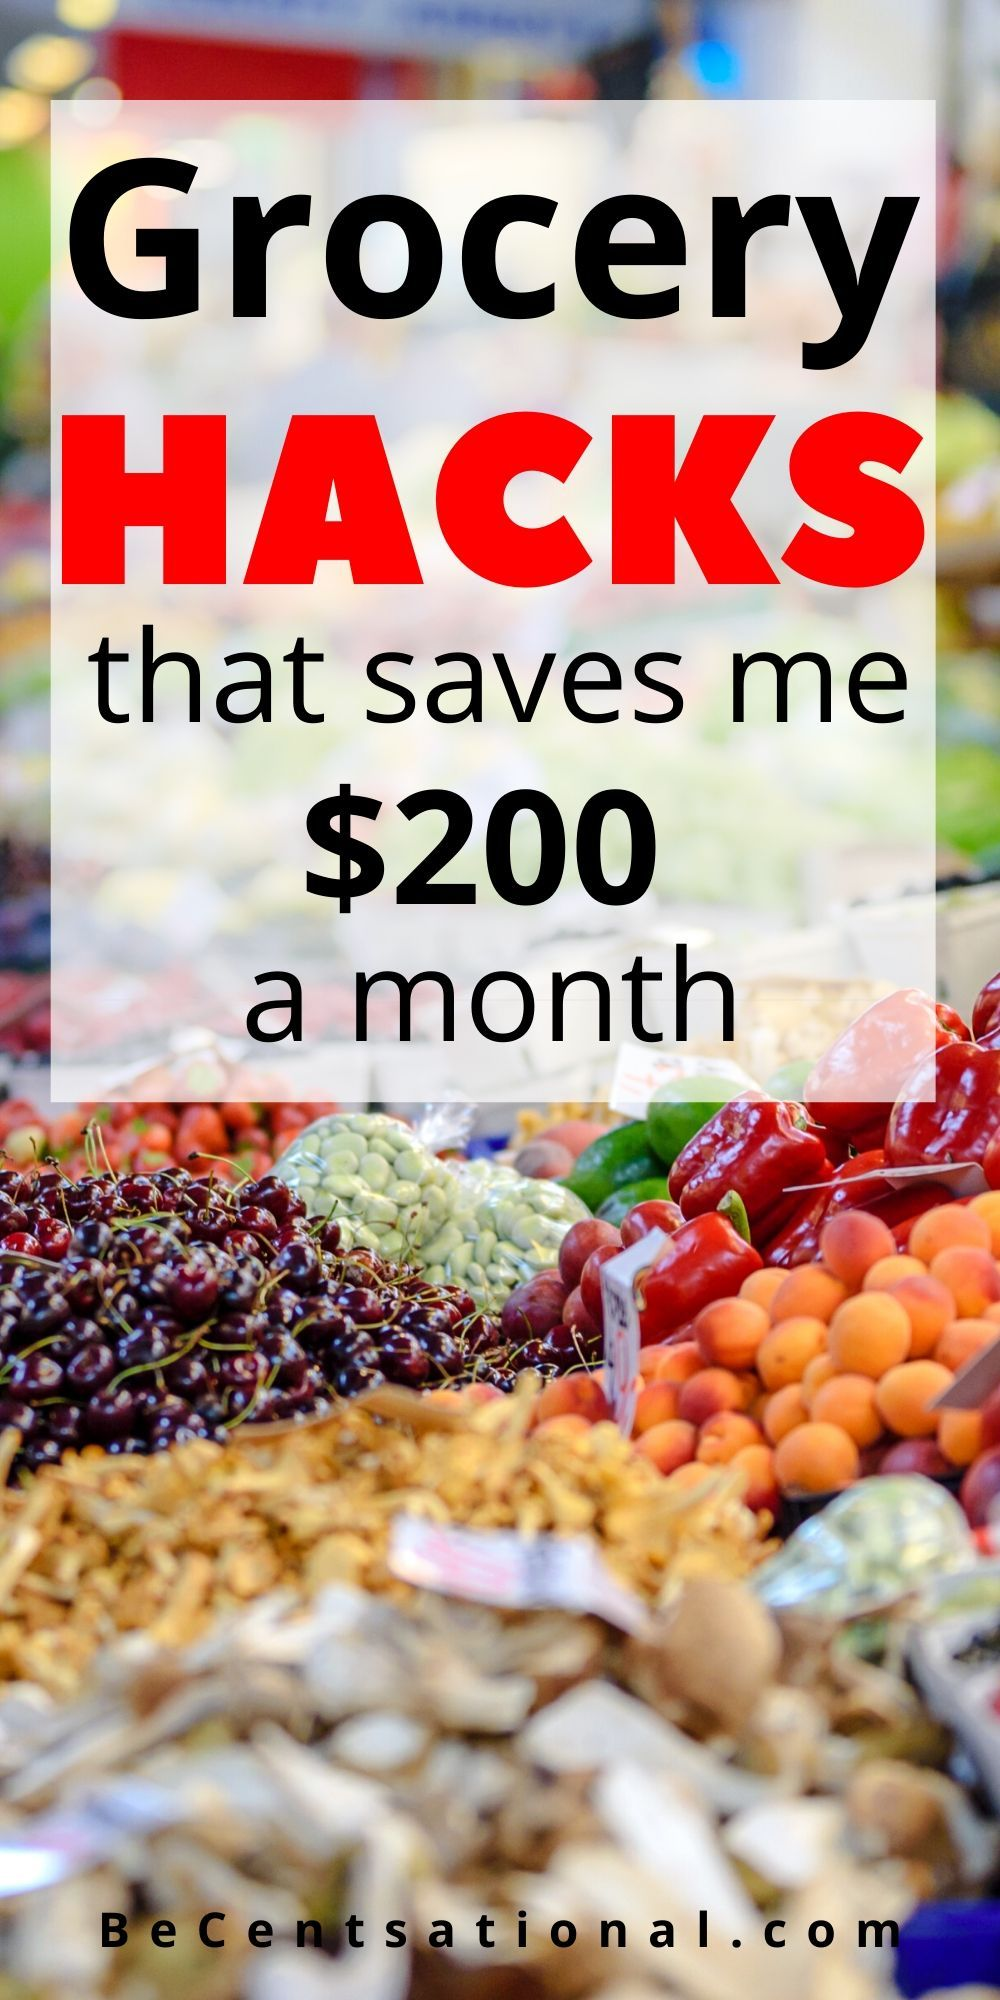 How To Save Money On Groceries - Simple Everyday Tips